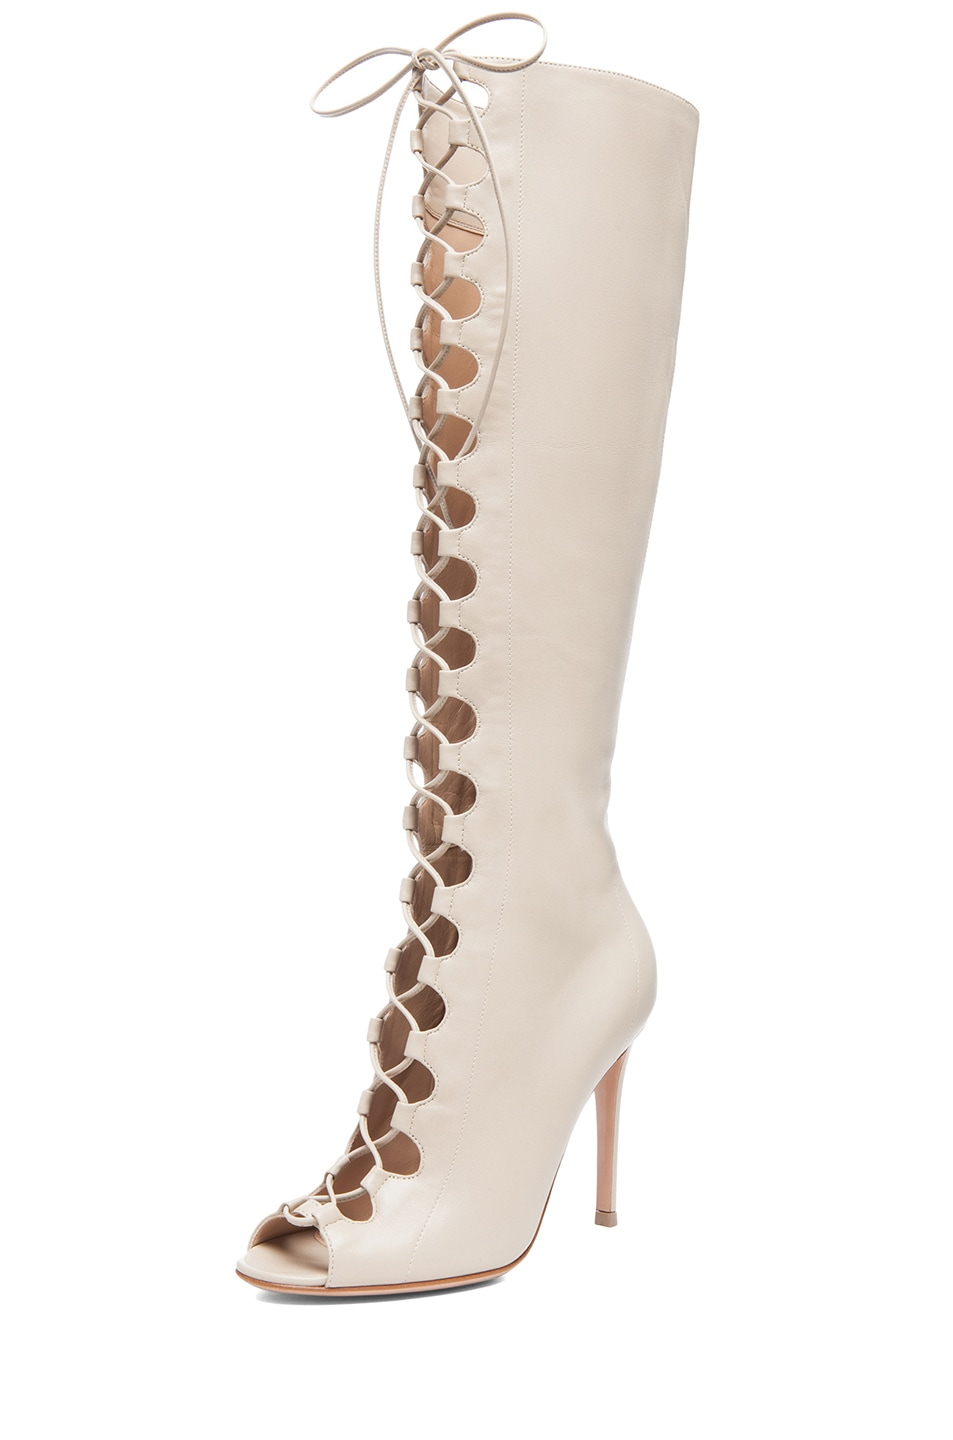 Image 2 of Gianvito Rossi Nappa Leather Lace Up Boots in Corda